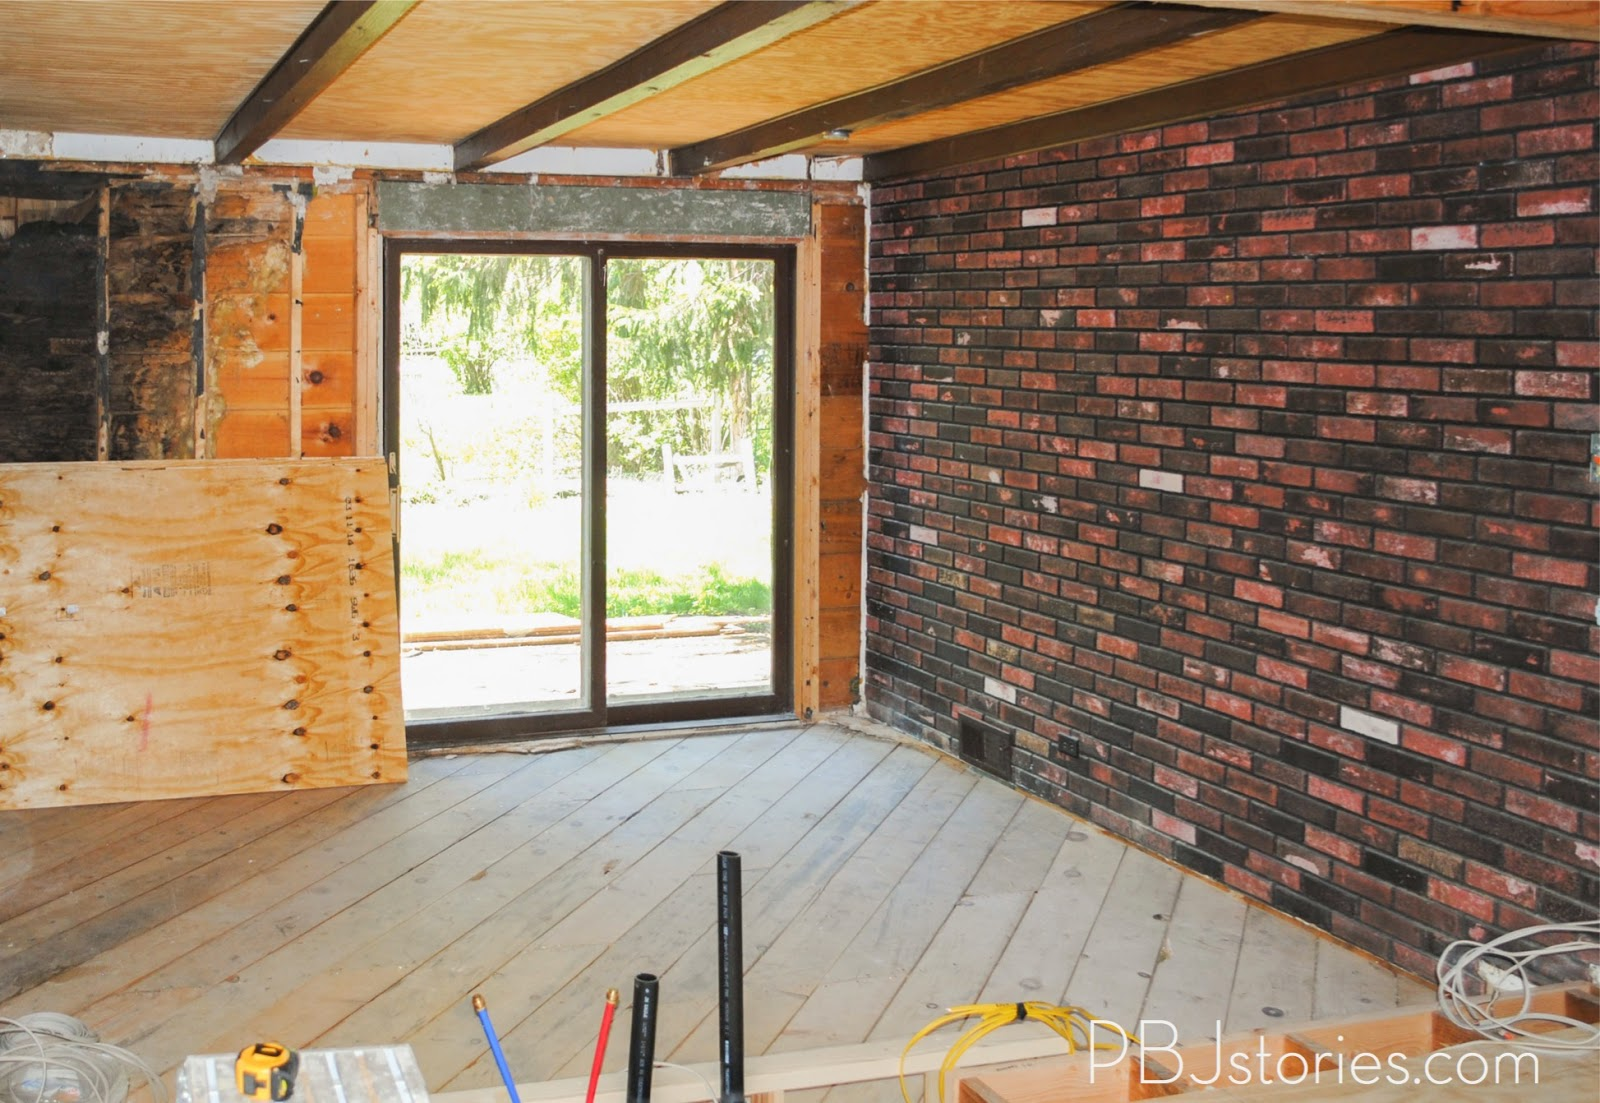 How To Paint An Interior Brick Wall | #PBJreno